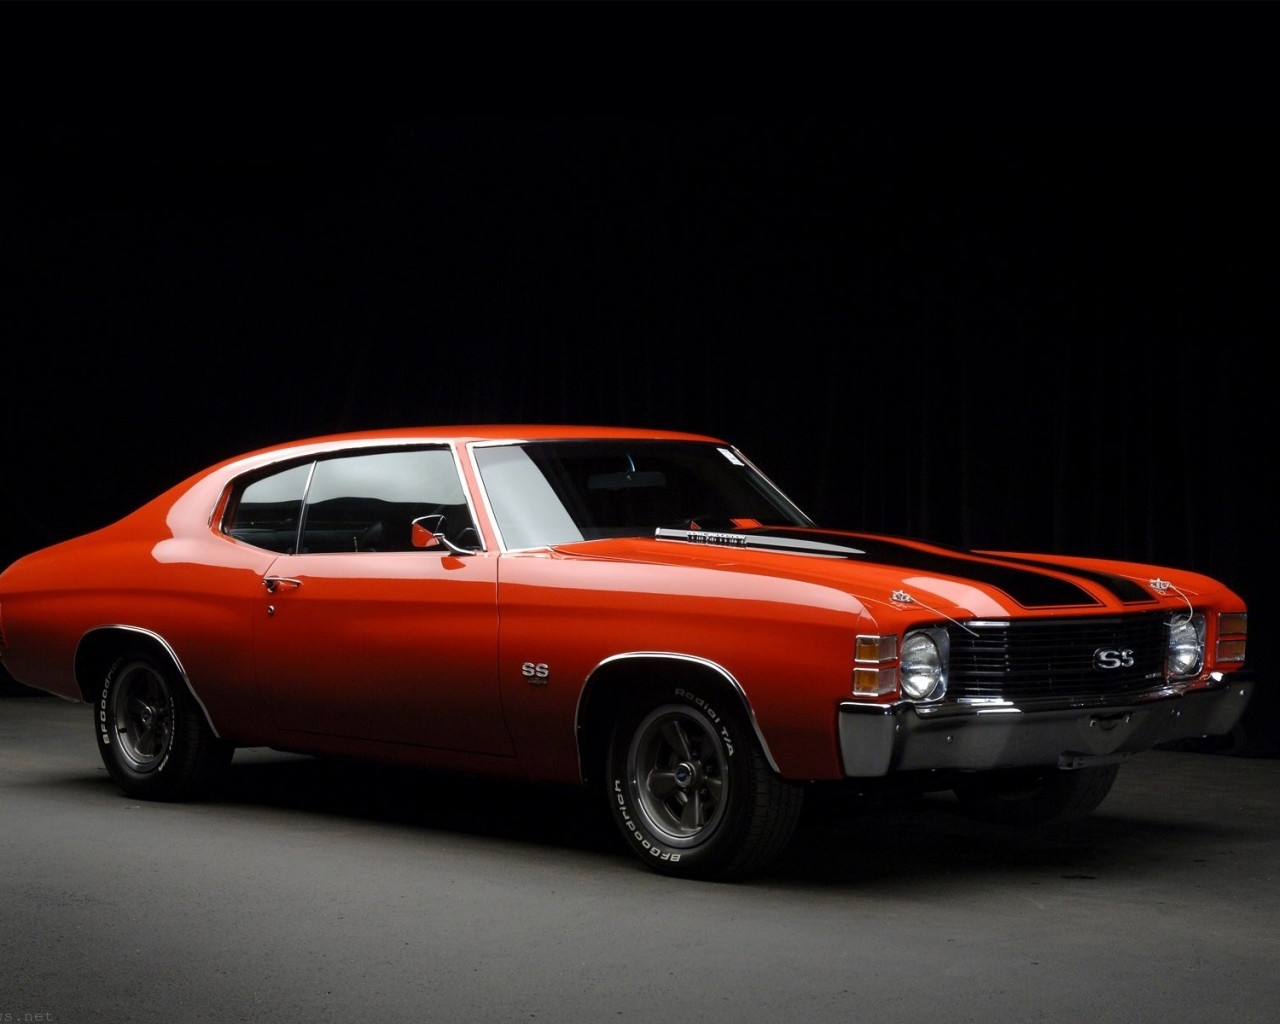 Chevy Muscle Car Wallpaper 4220 Hd Wallpapers In Cars   Imagesci Com